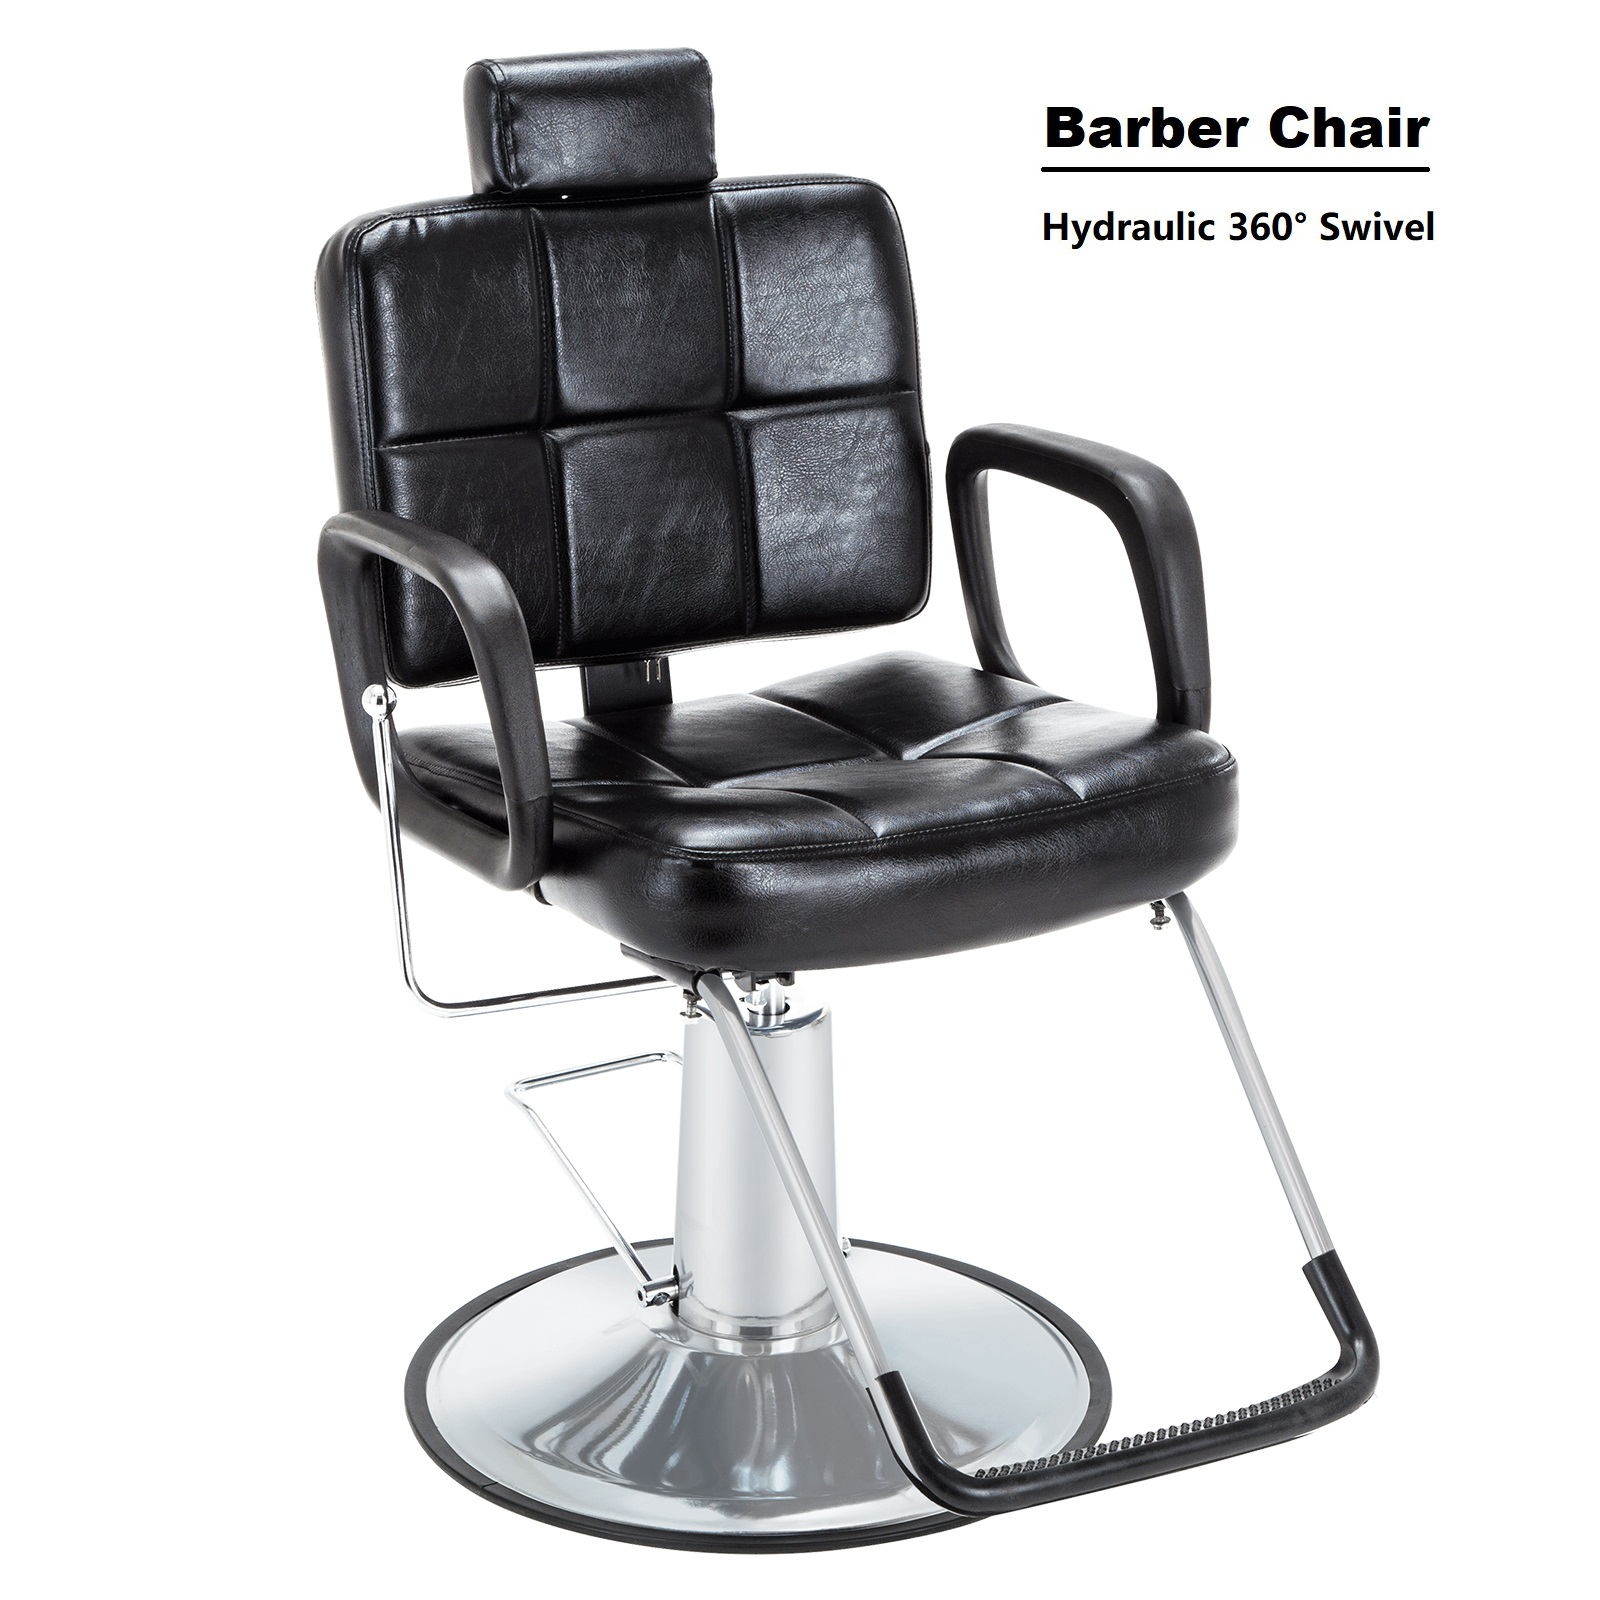 Astonishing Details About 3600Swivel Barber Chair Hydraulic Pump Footrest Cover Recliners Salon Equipment Gmtry Best Dining Table And Chair Ideas Images Gmtryco